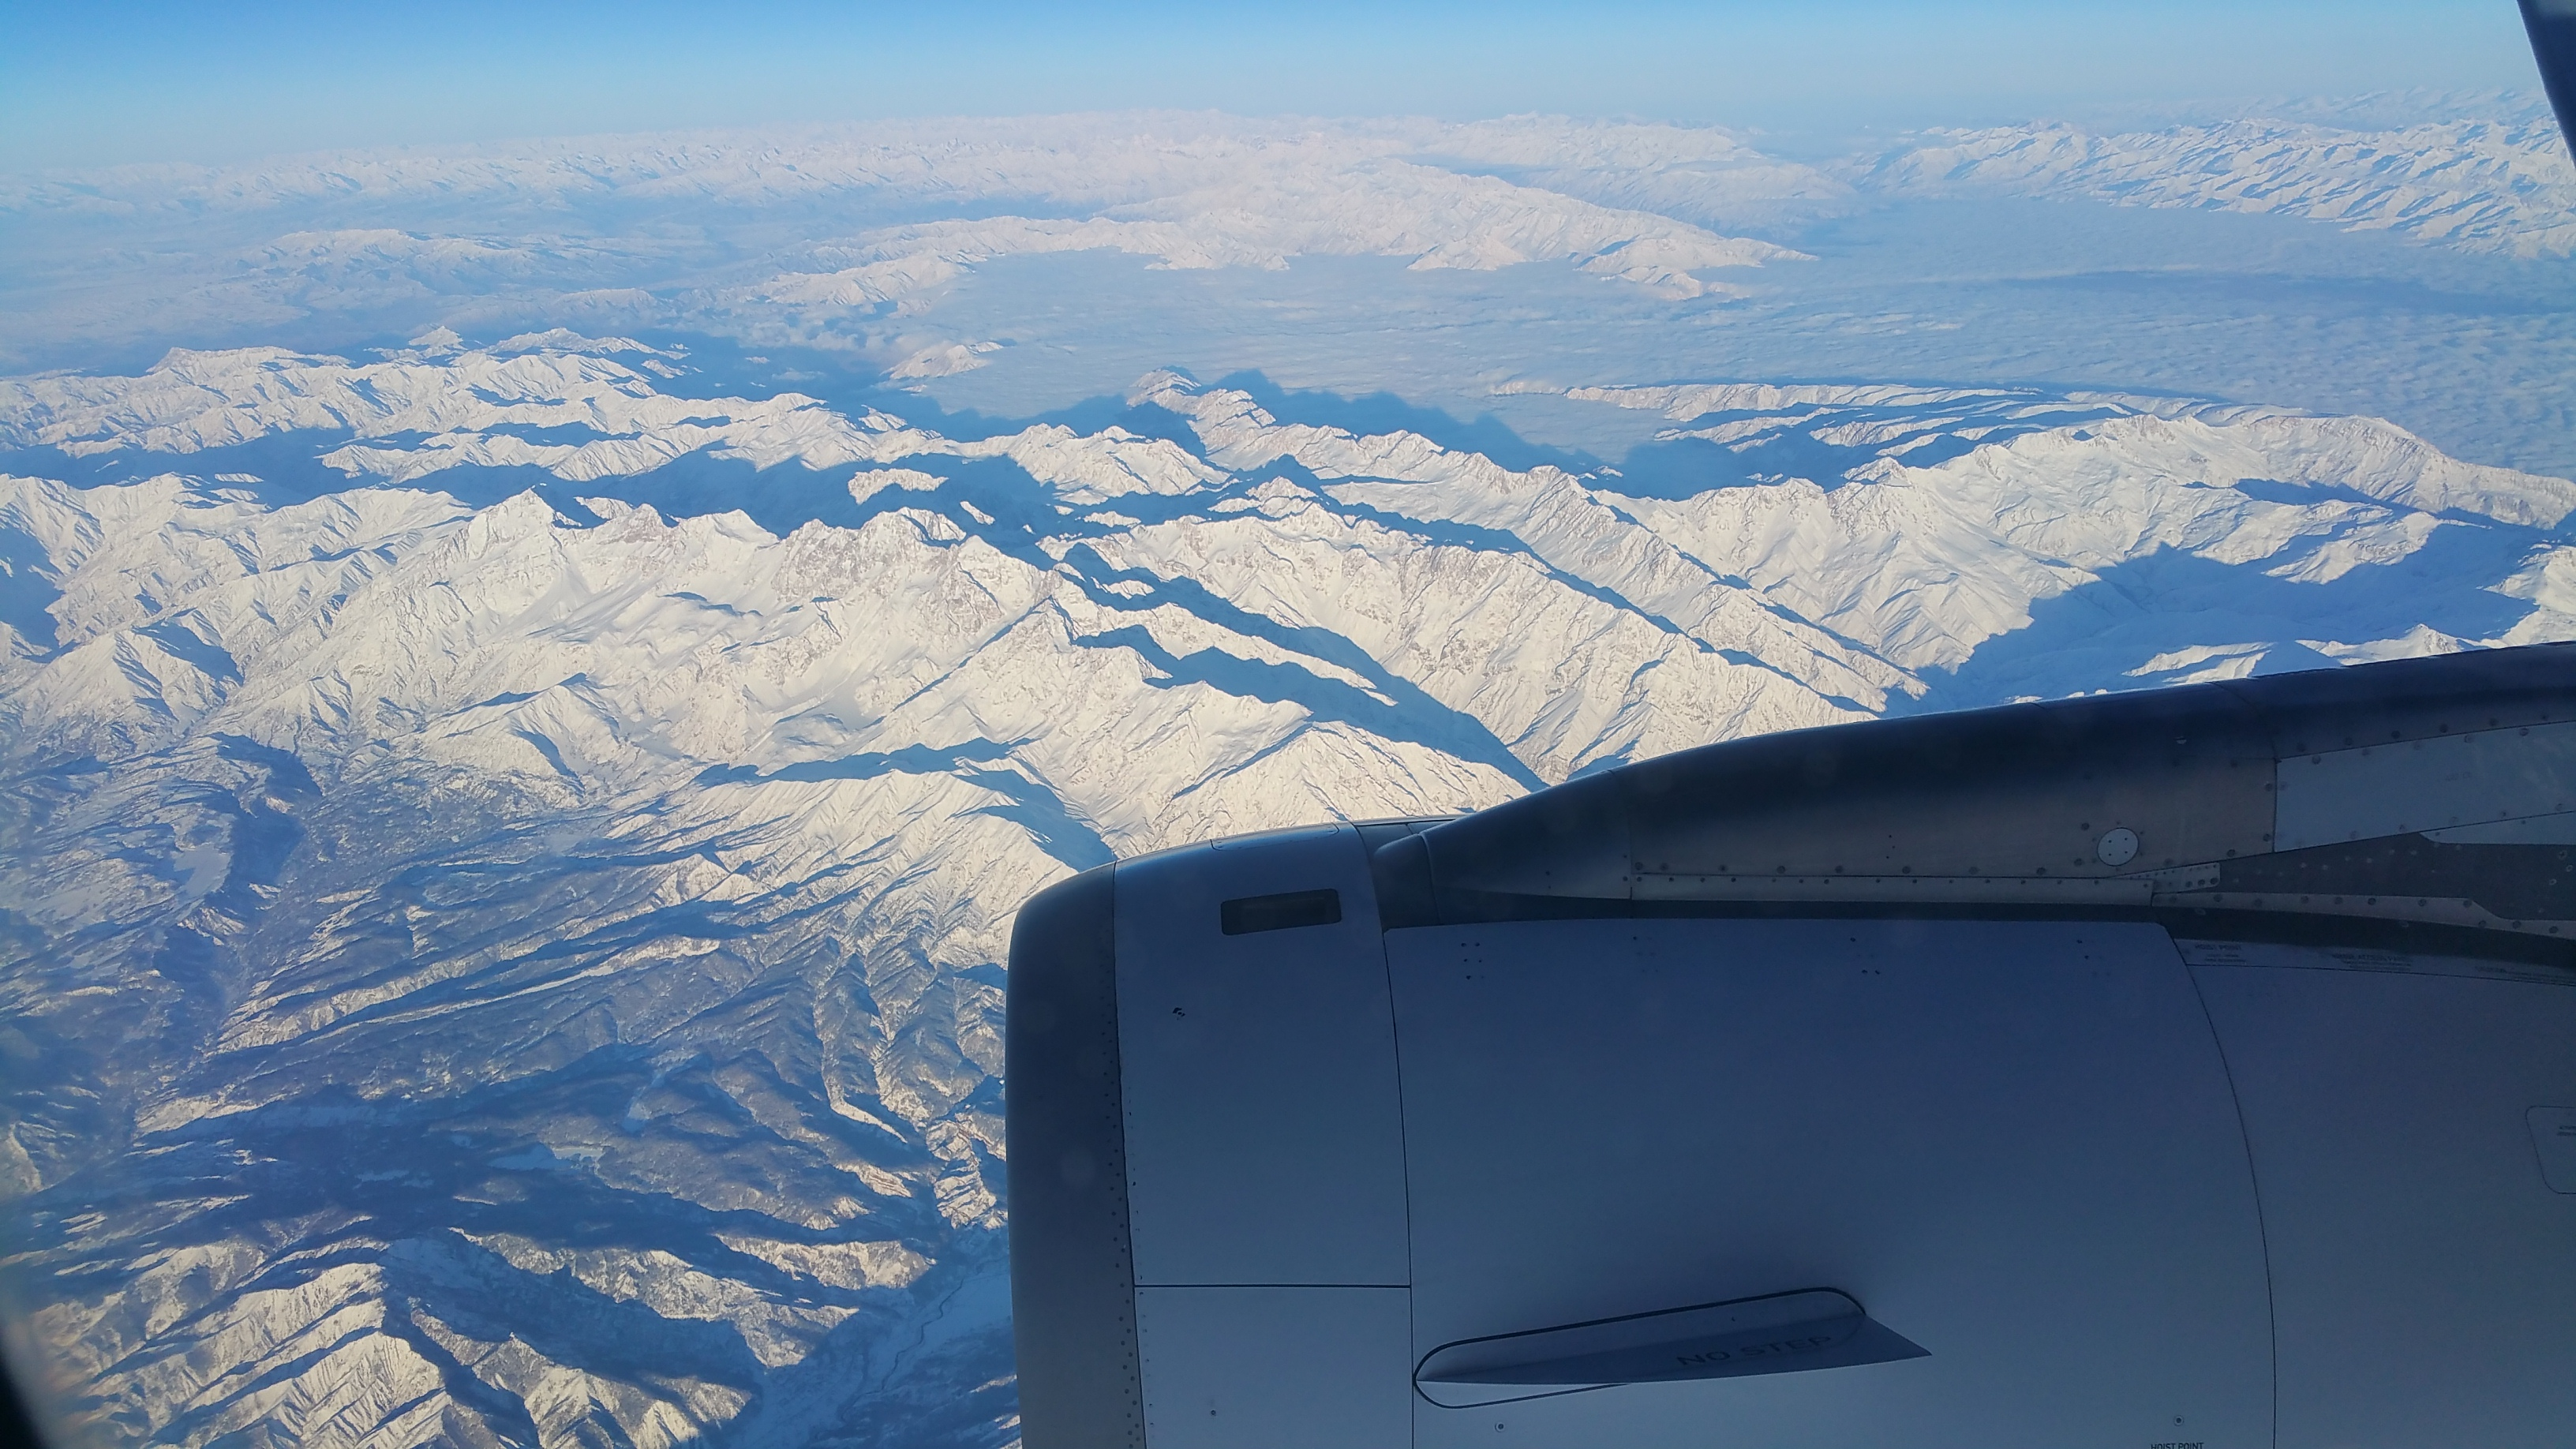 Air Astana over the Tien Shan Mountains in Kyrgyzstan.